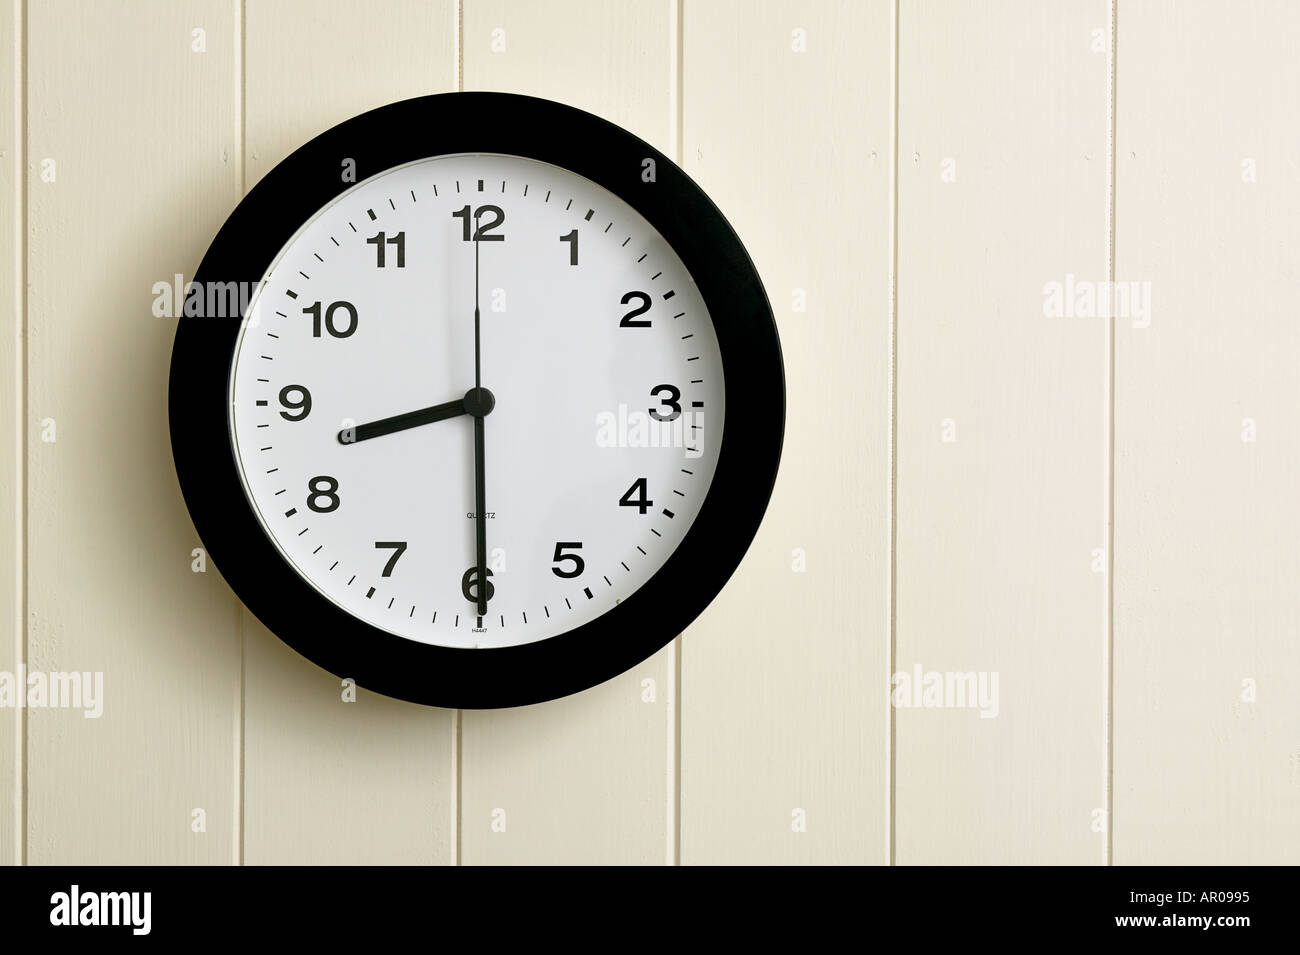 30 wall clock vintage wall clock showing time at half past eight thirty 0830 2030 stock